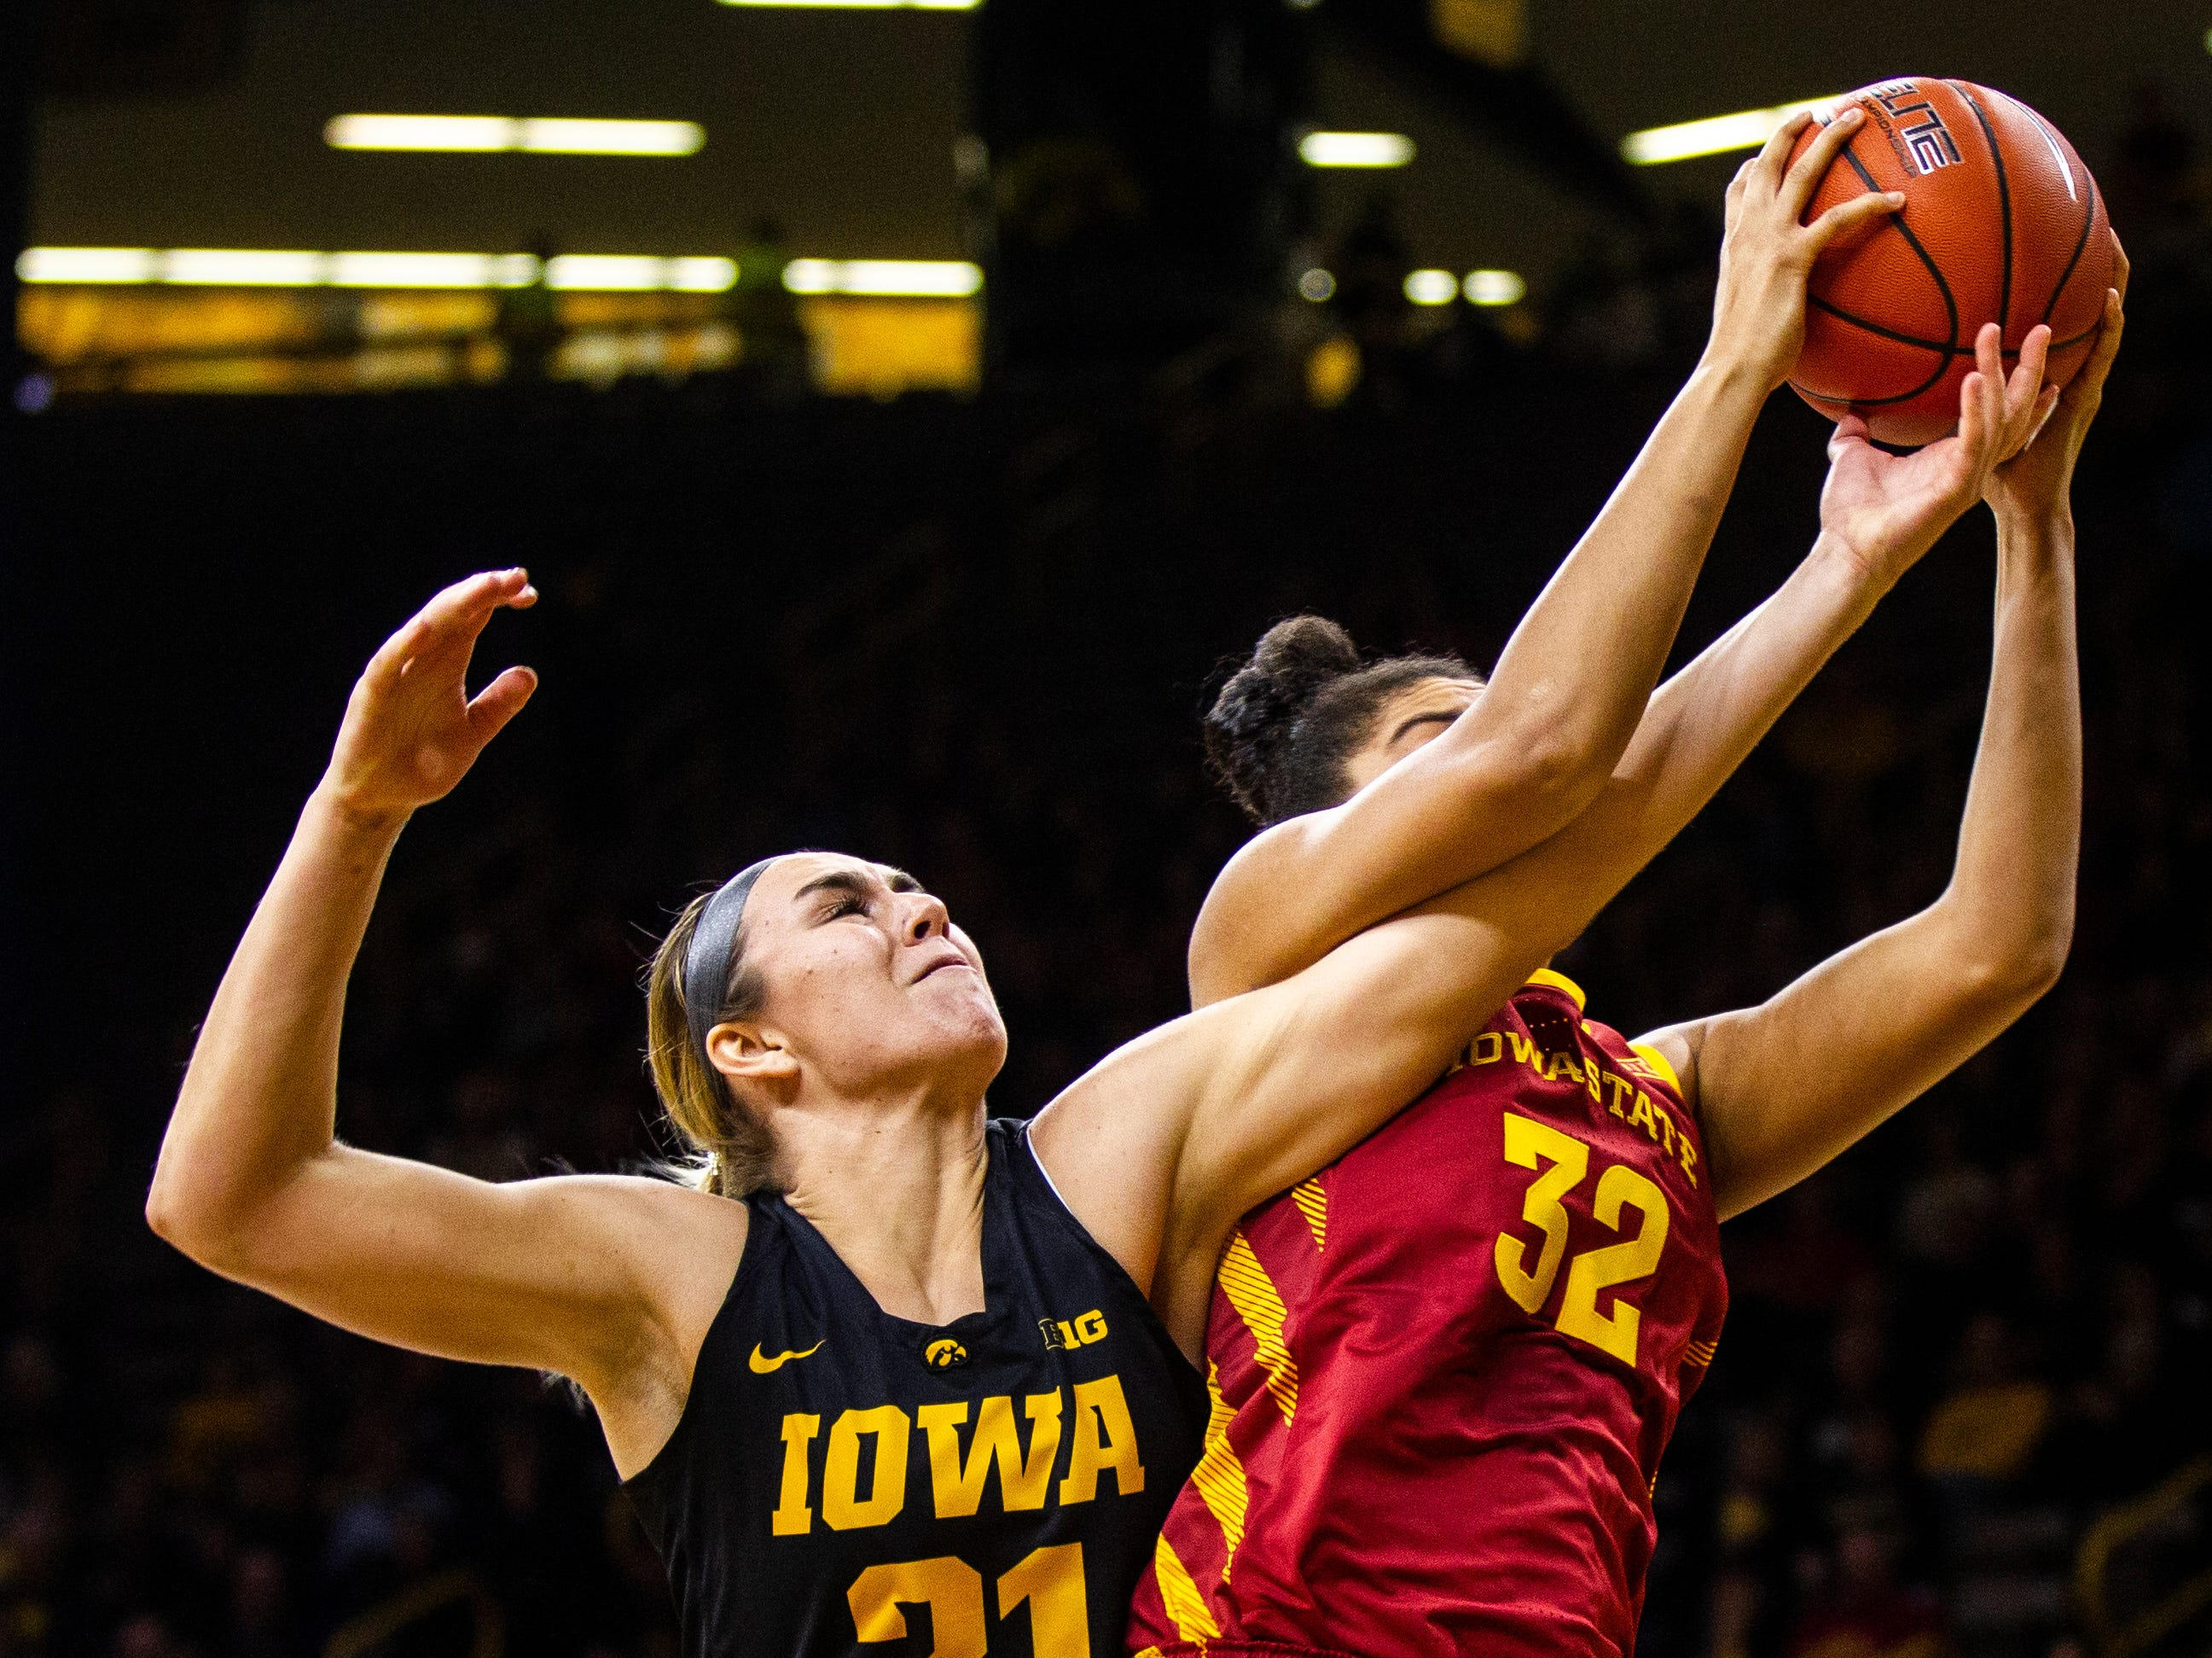 Iowa State guard Meredith Burkhall (32) battles Iowa forward Hannah Stewart (21) for a rebound during a Cy-Hawk series NCAA women's basketball game on Wednesday, Dec. 5, 2018, at Carver-Hawkeye Arena in Iowa City.